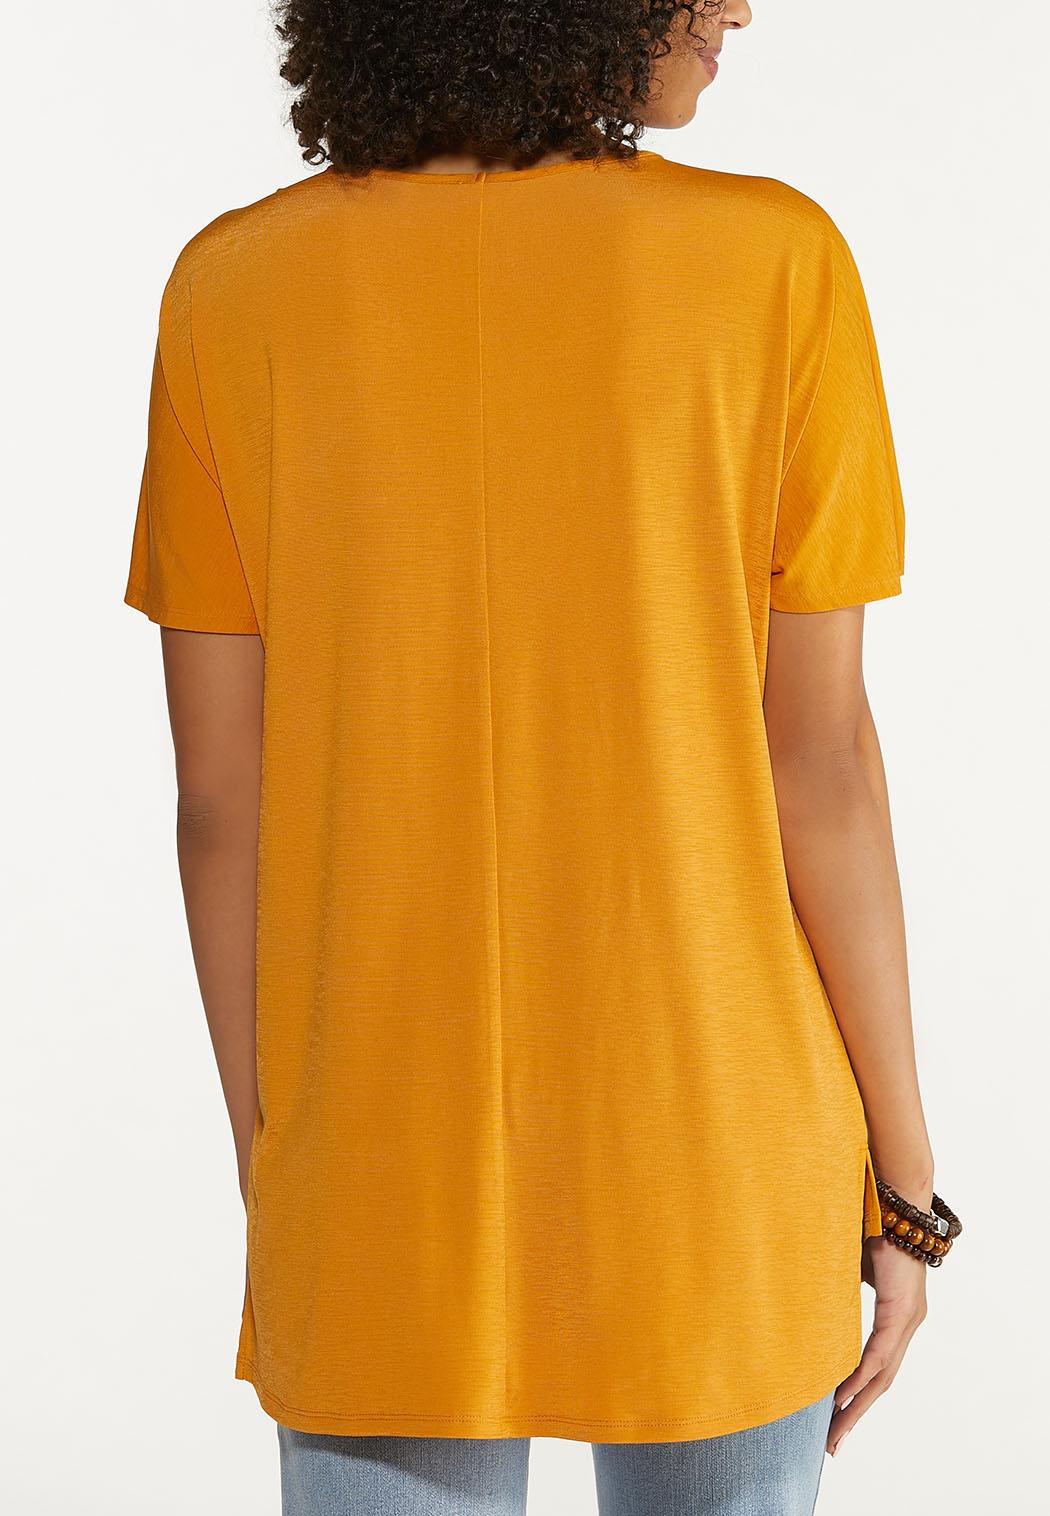 Cinched Sleeve Top (Item #44704459)